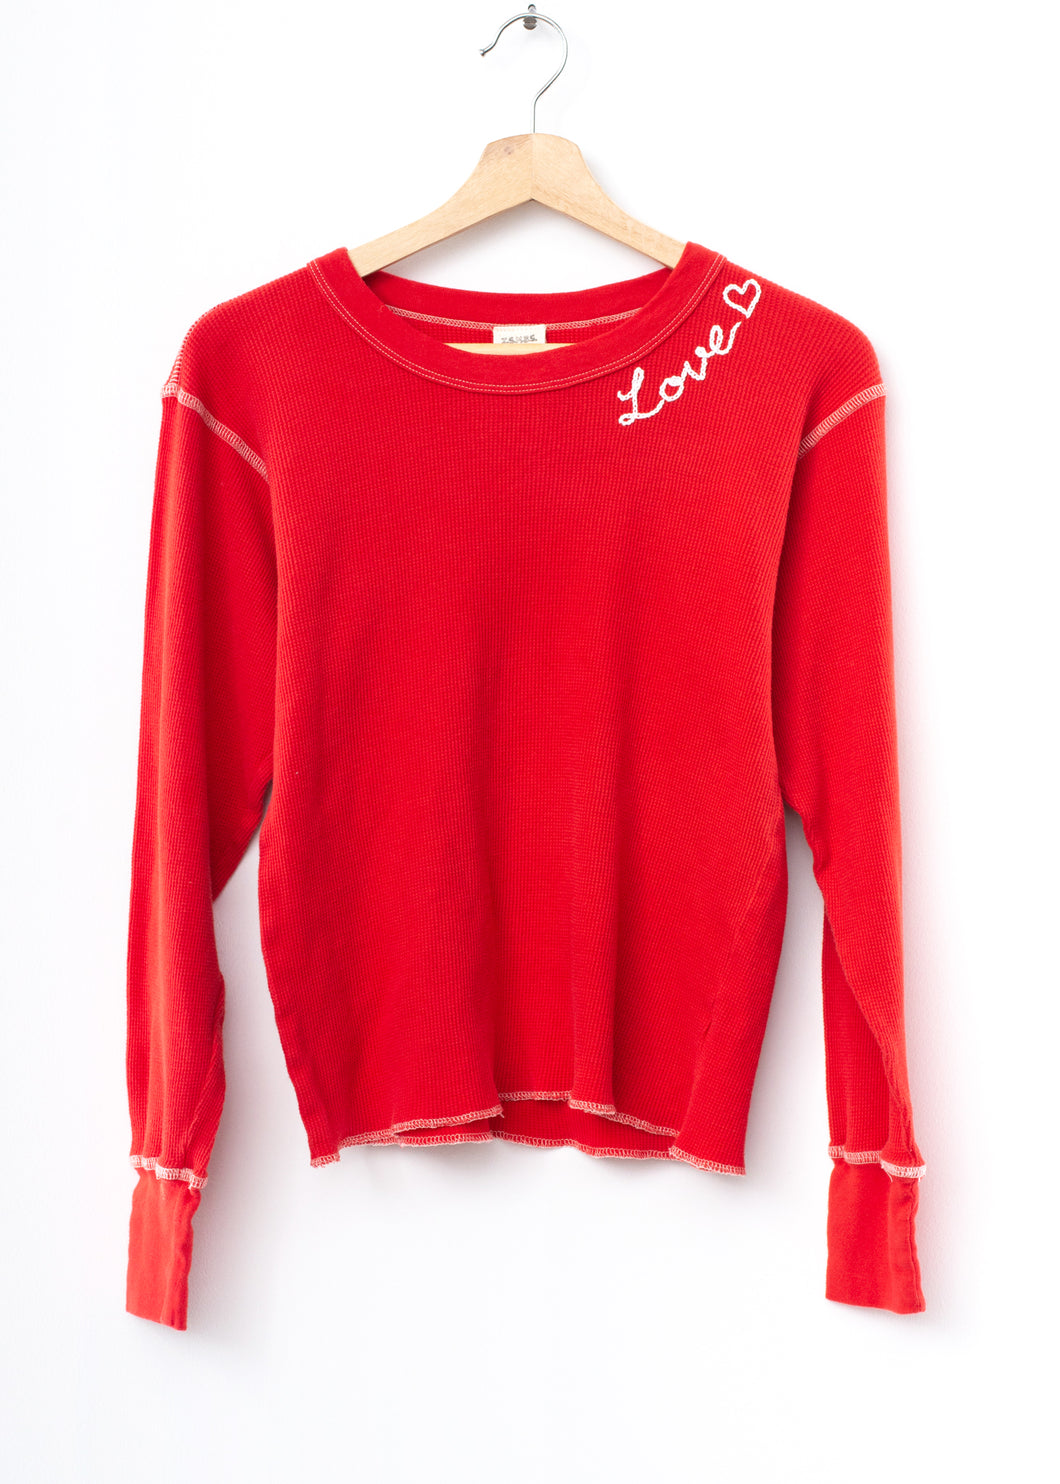 Love ❤️ Thermal Tee L/S-Red